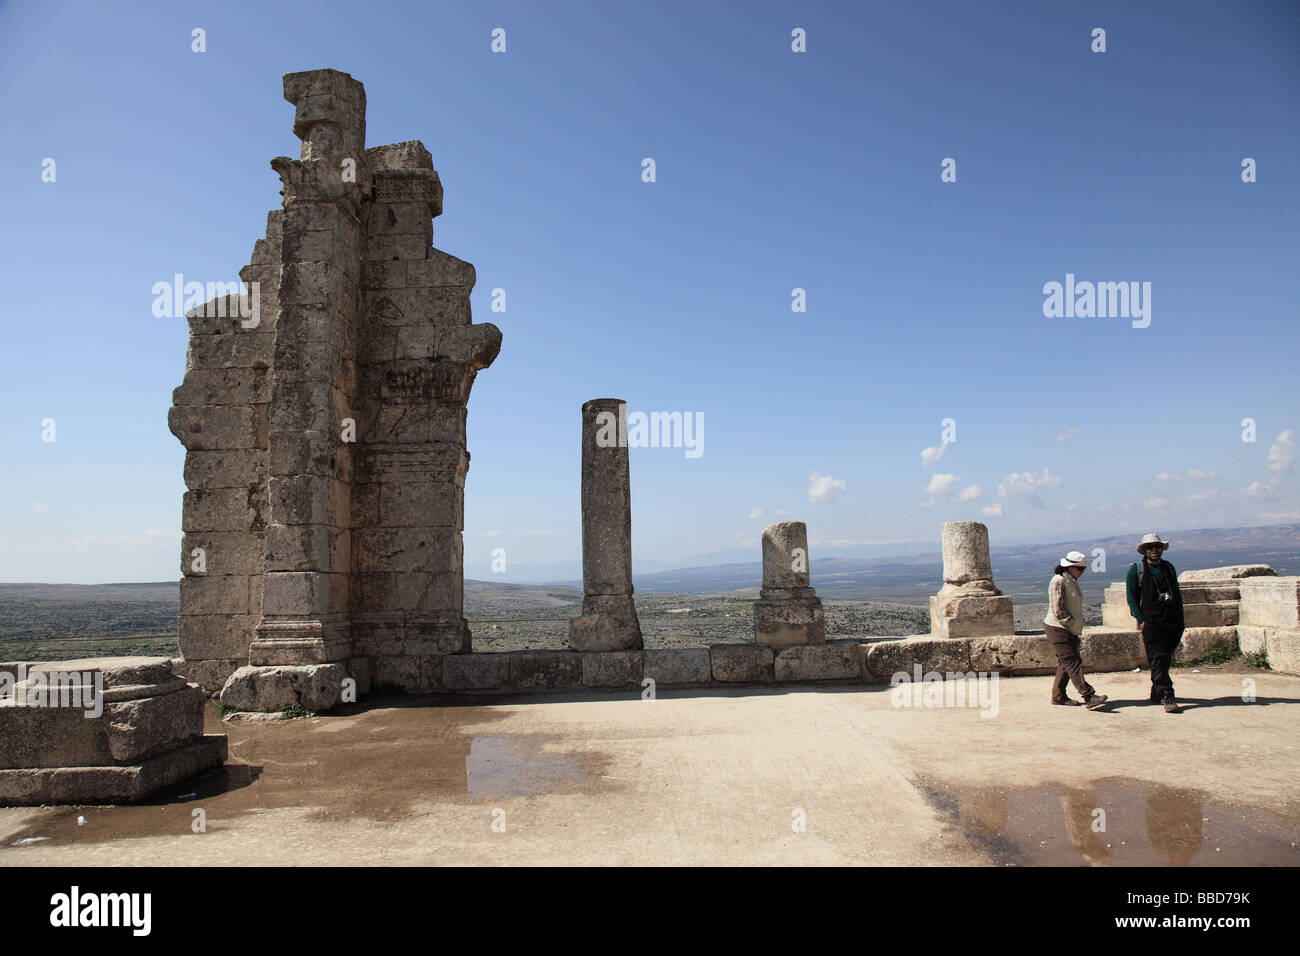 Aleppo Syria Syrian Middle East old ancient city Asia Citadel Aleppian religion Governorate Sunni Muslims muslim - Stock Image